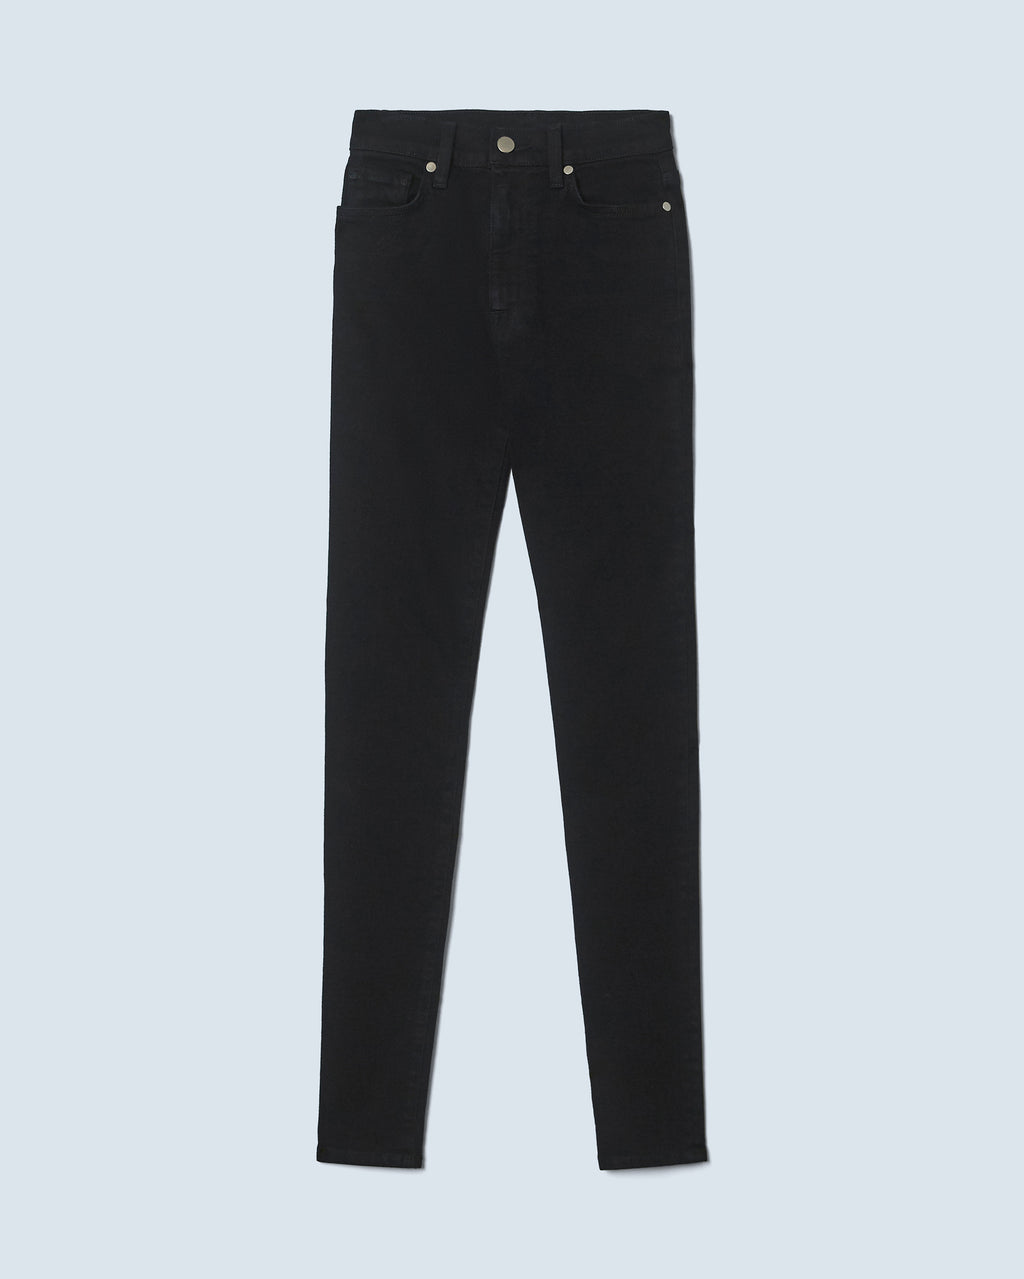 The Ultra High Rise Skinny Jean In Black